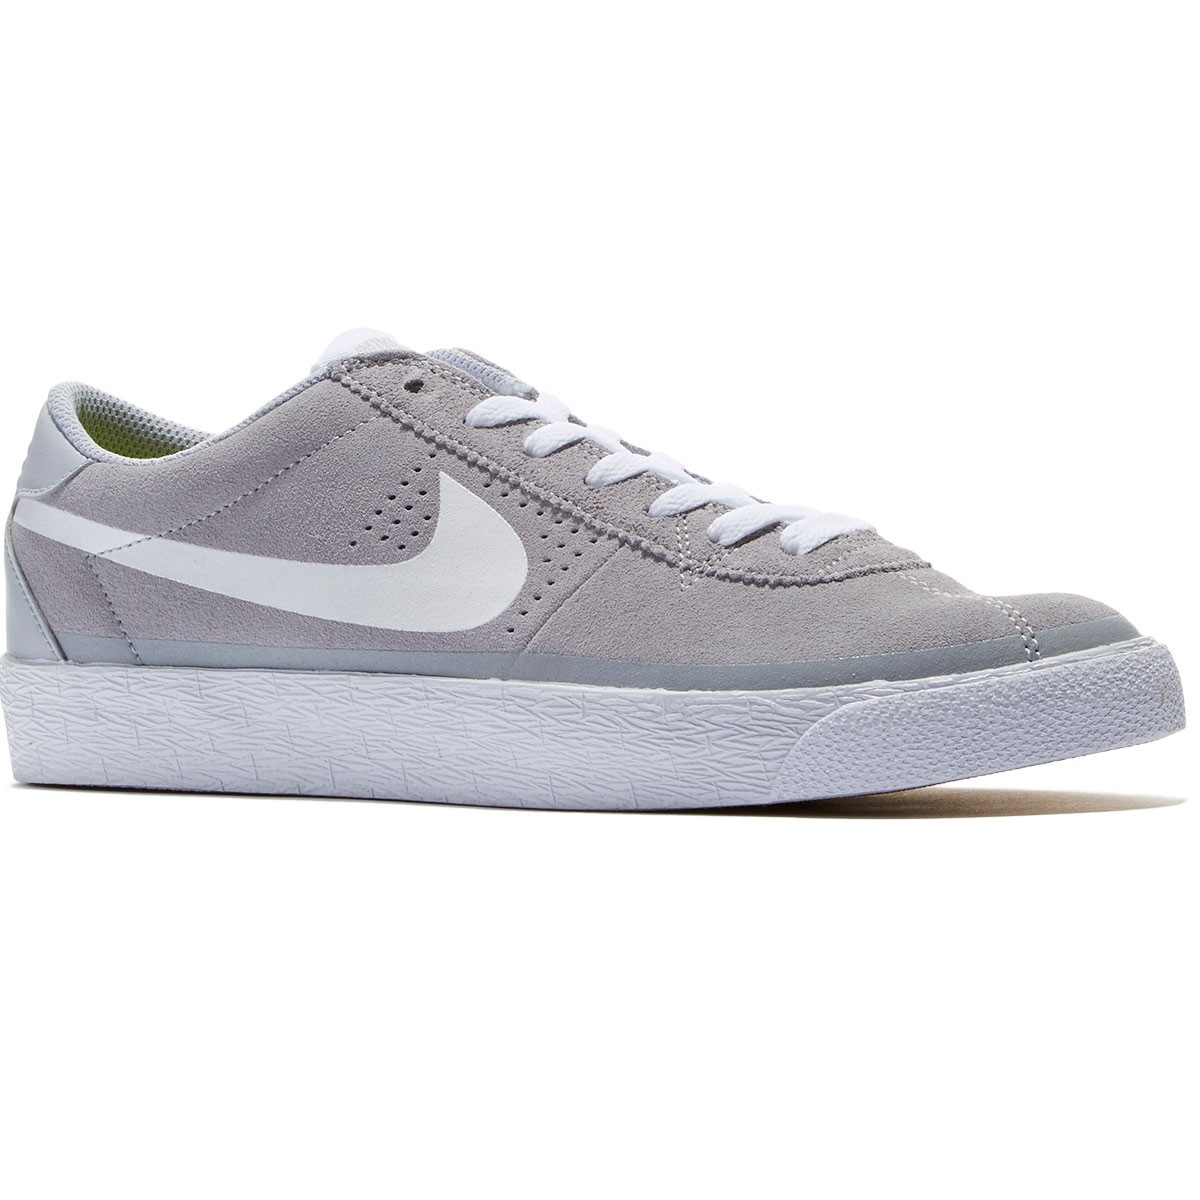 Nike Bruin SB Premium SE Shoes - Wolf Grey/Gum/Light Brown/White - 8.0